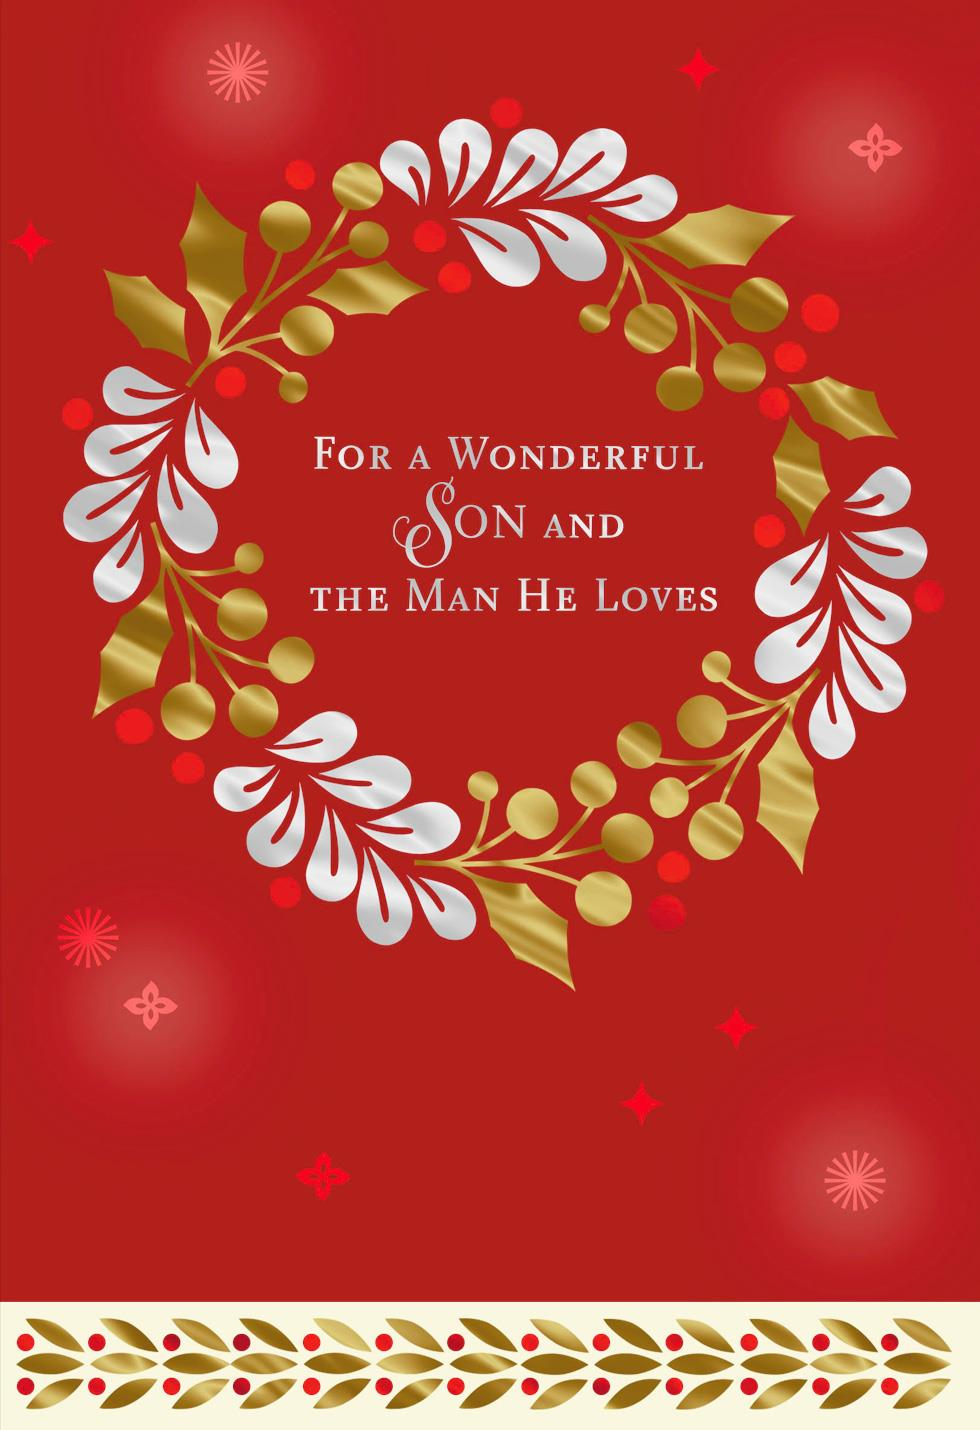 For A Wonderful Son And The Man He Loves Christmas Card